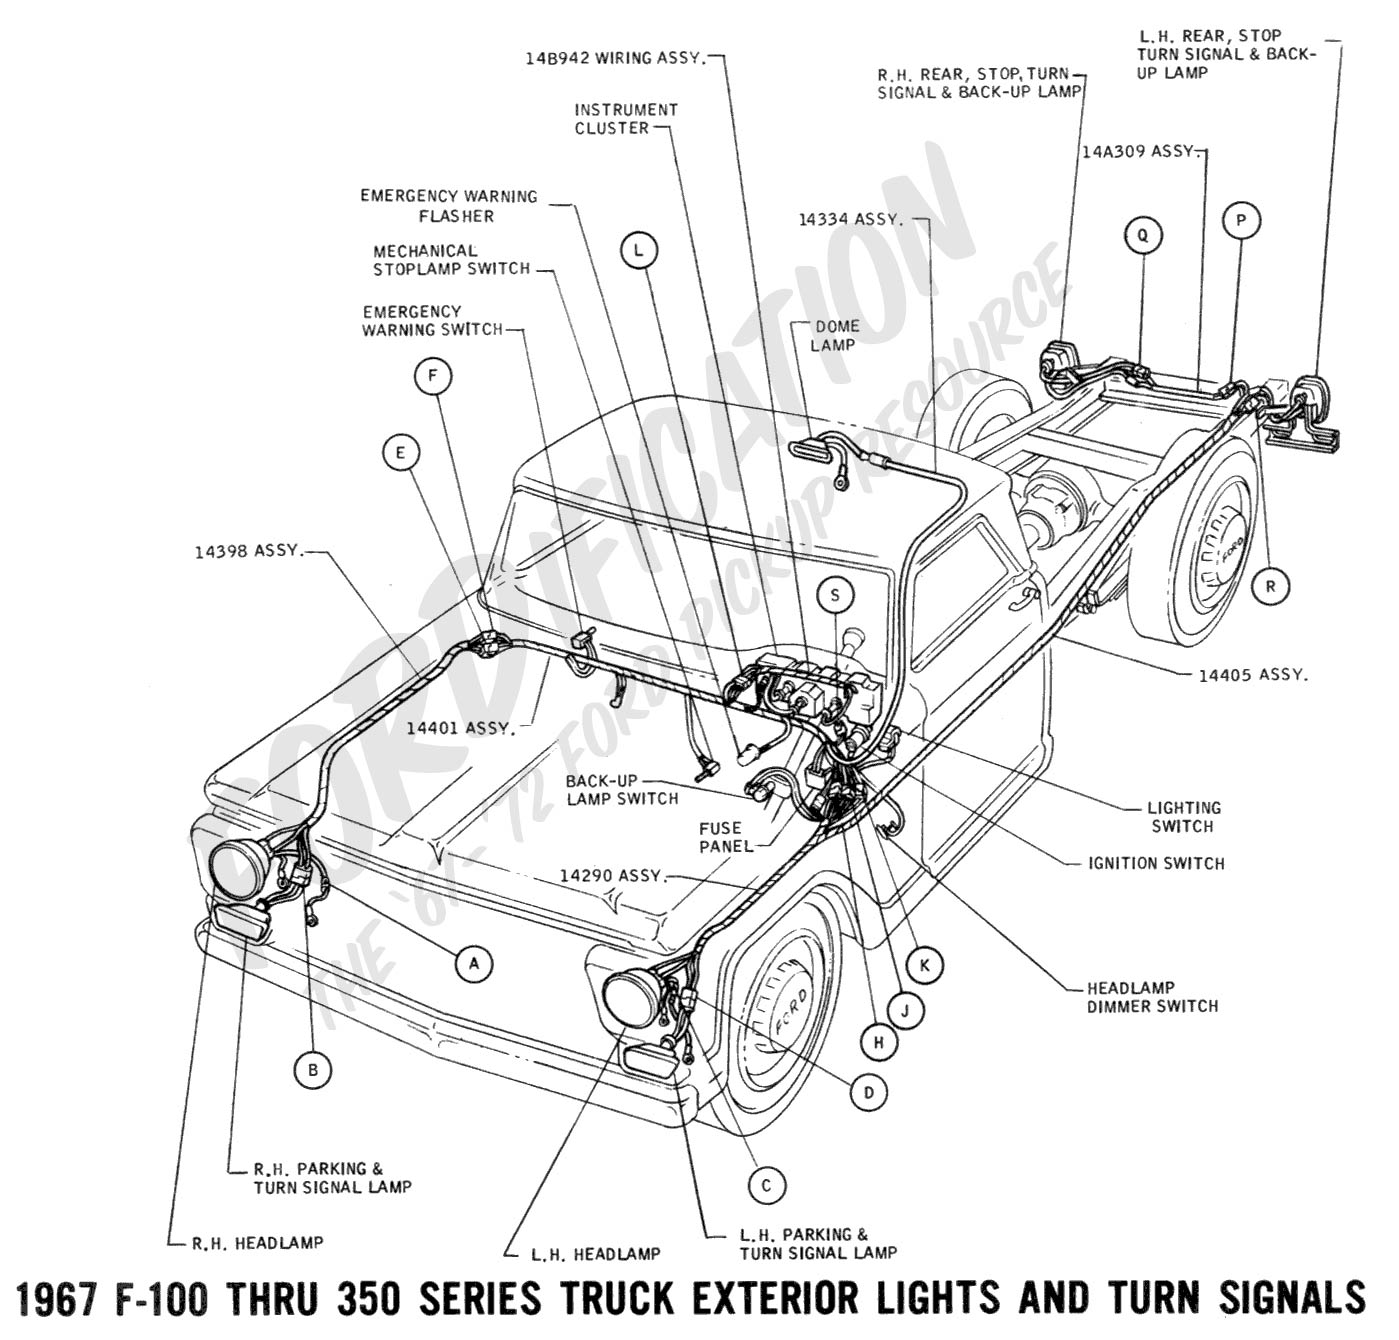 Ford truck technical drawings and schematics section h wiring 1967 f 100 thru f 350 exterior lights and turn signals 01 pooptronica